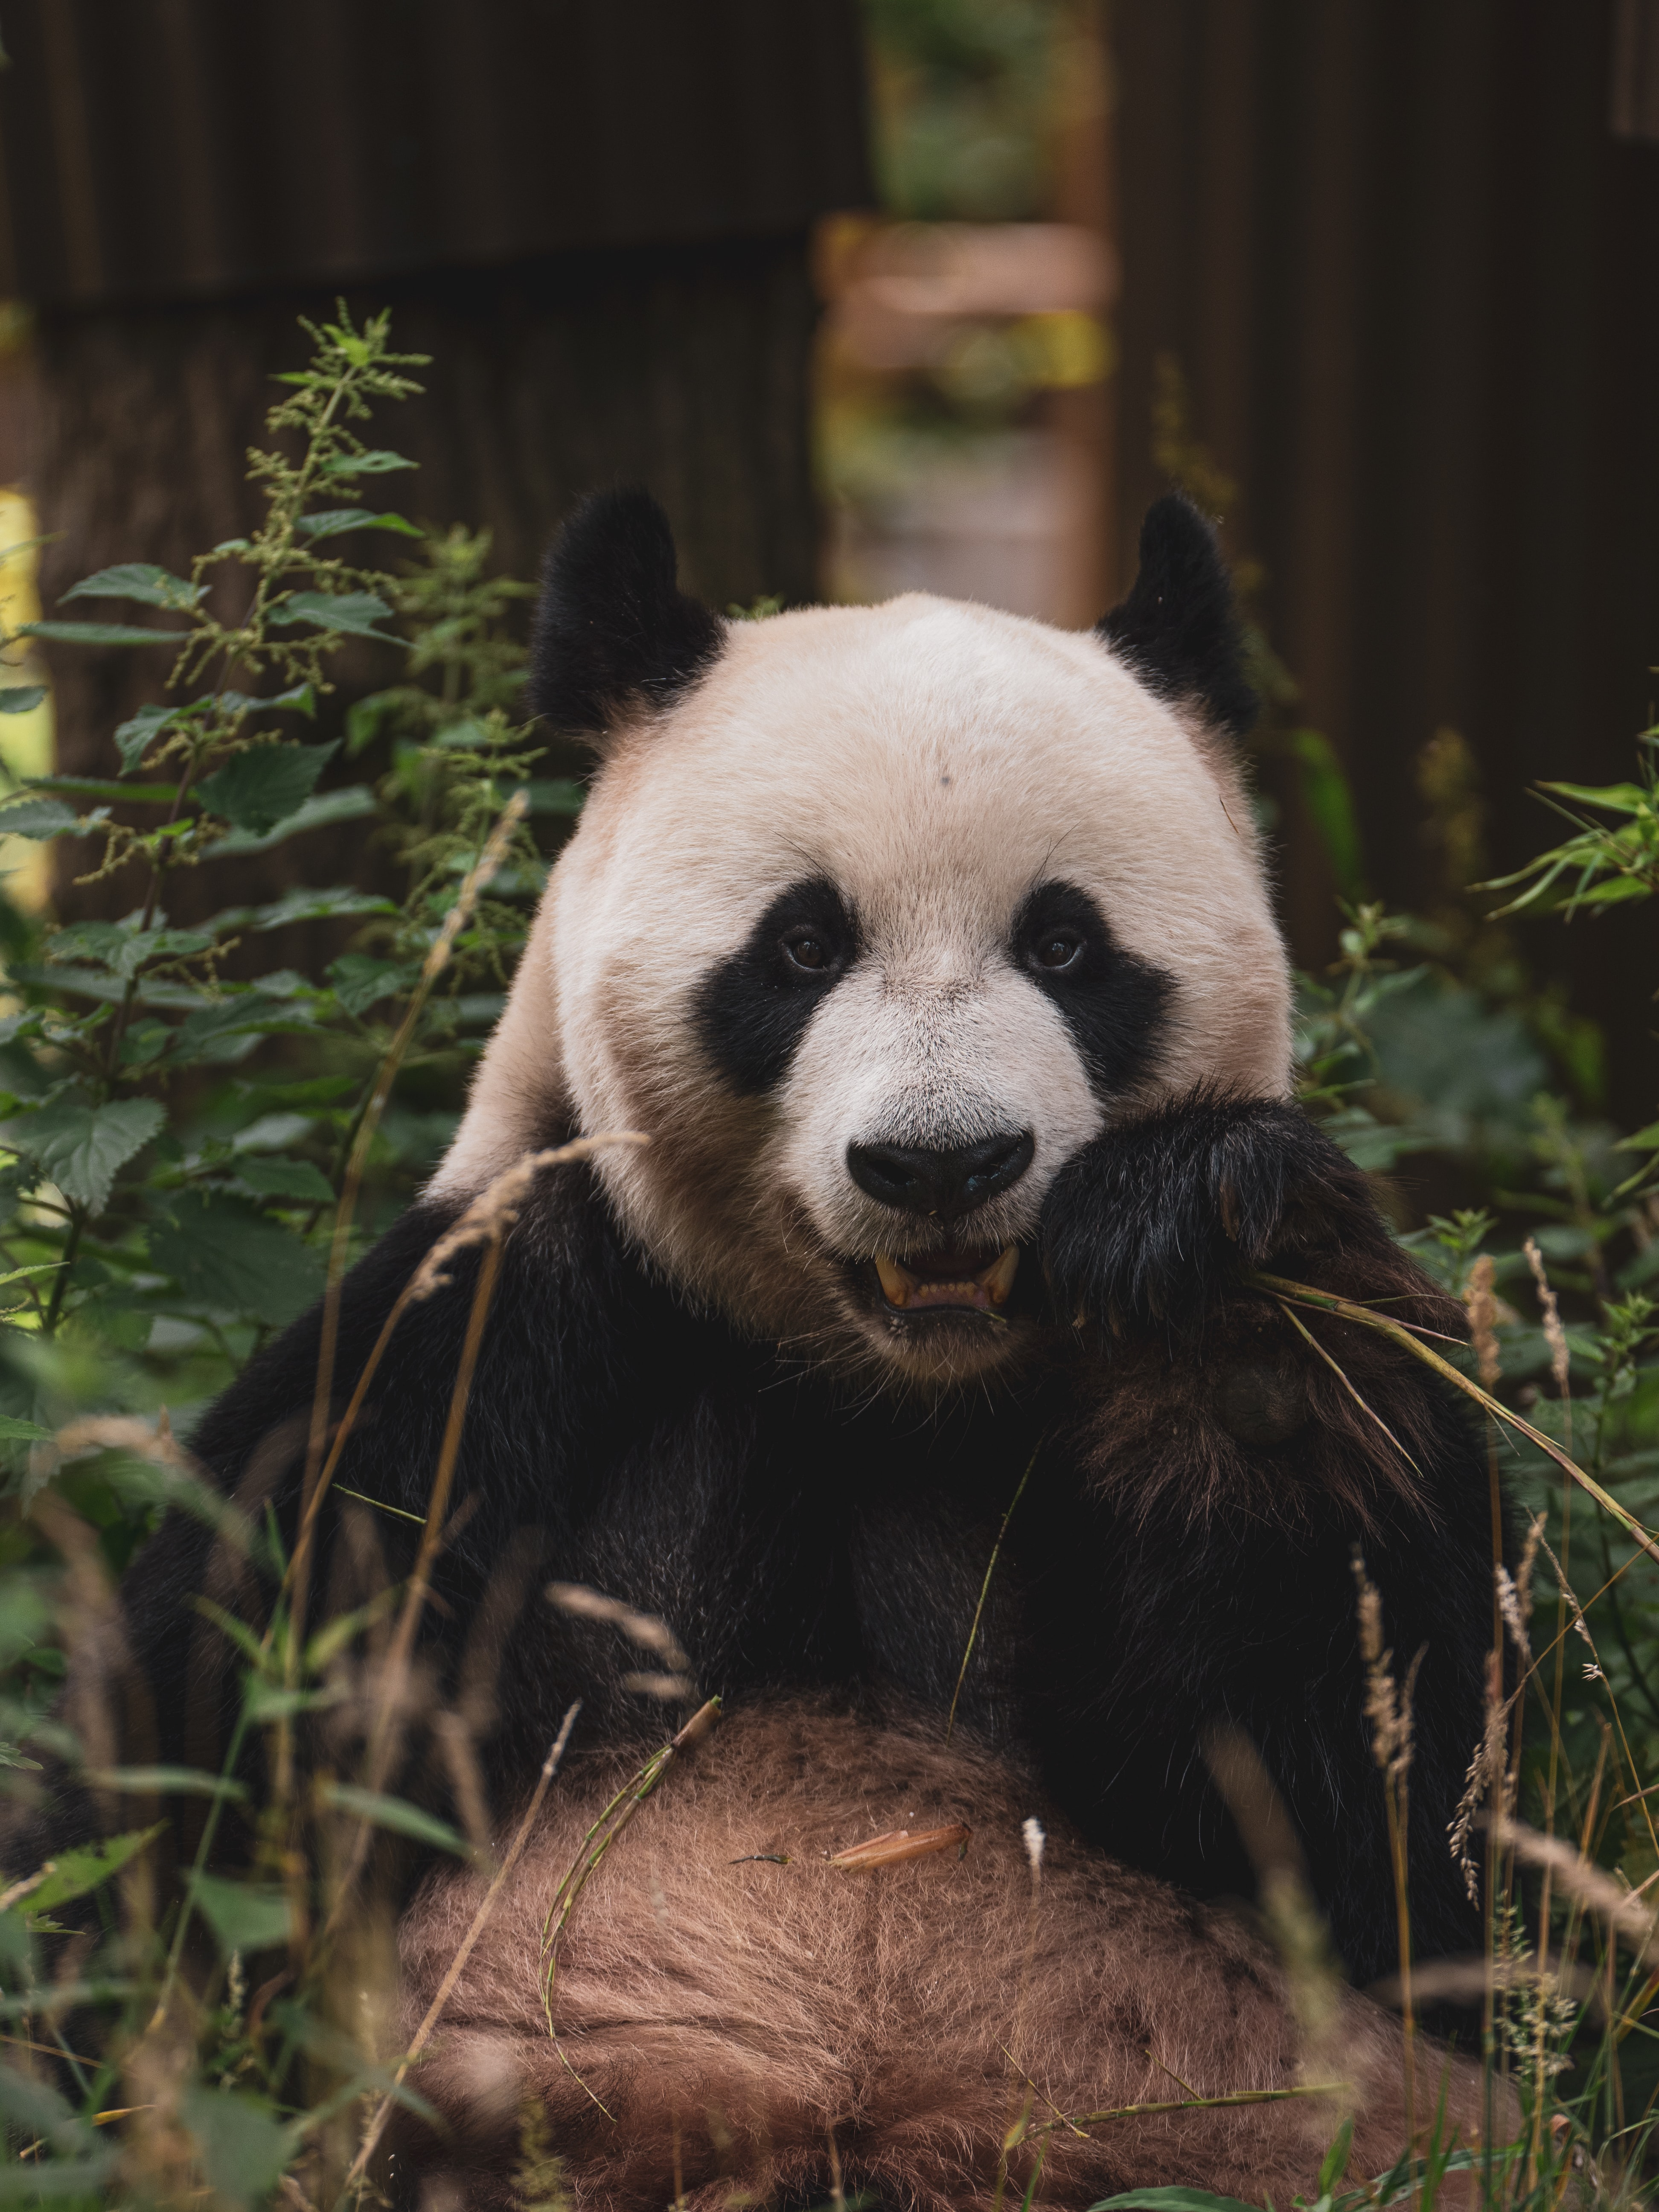 122583 download wallpaper Animals, Panda, Animal, Muzzle, Bamboo screensavers and pictures for free